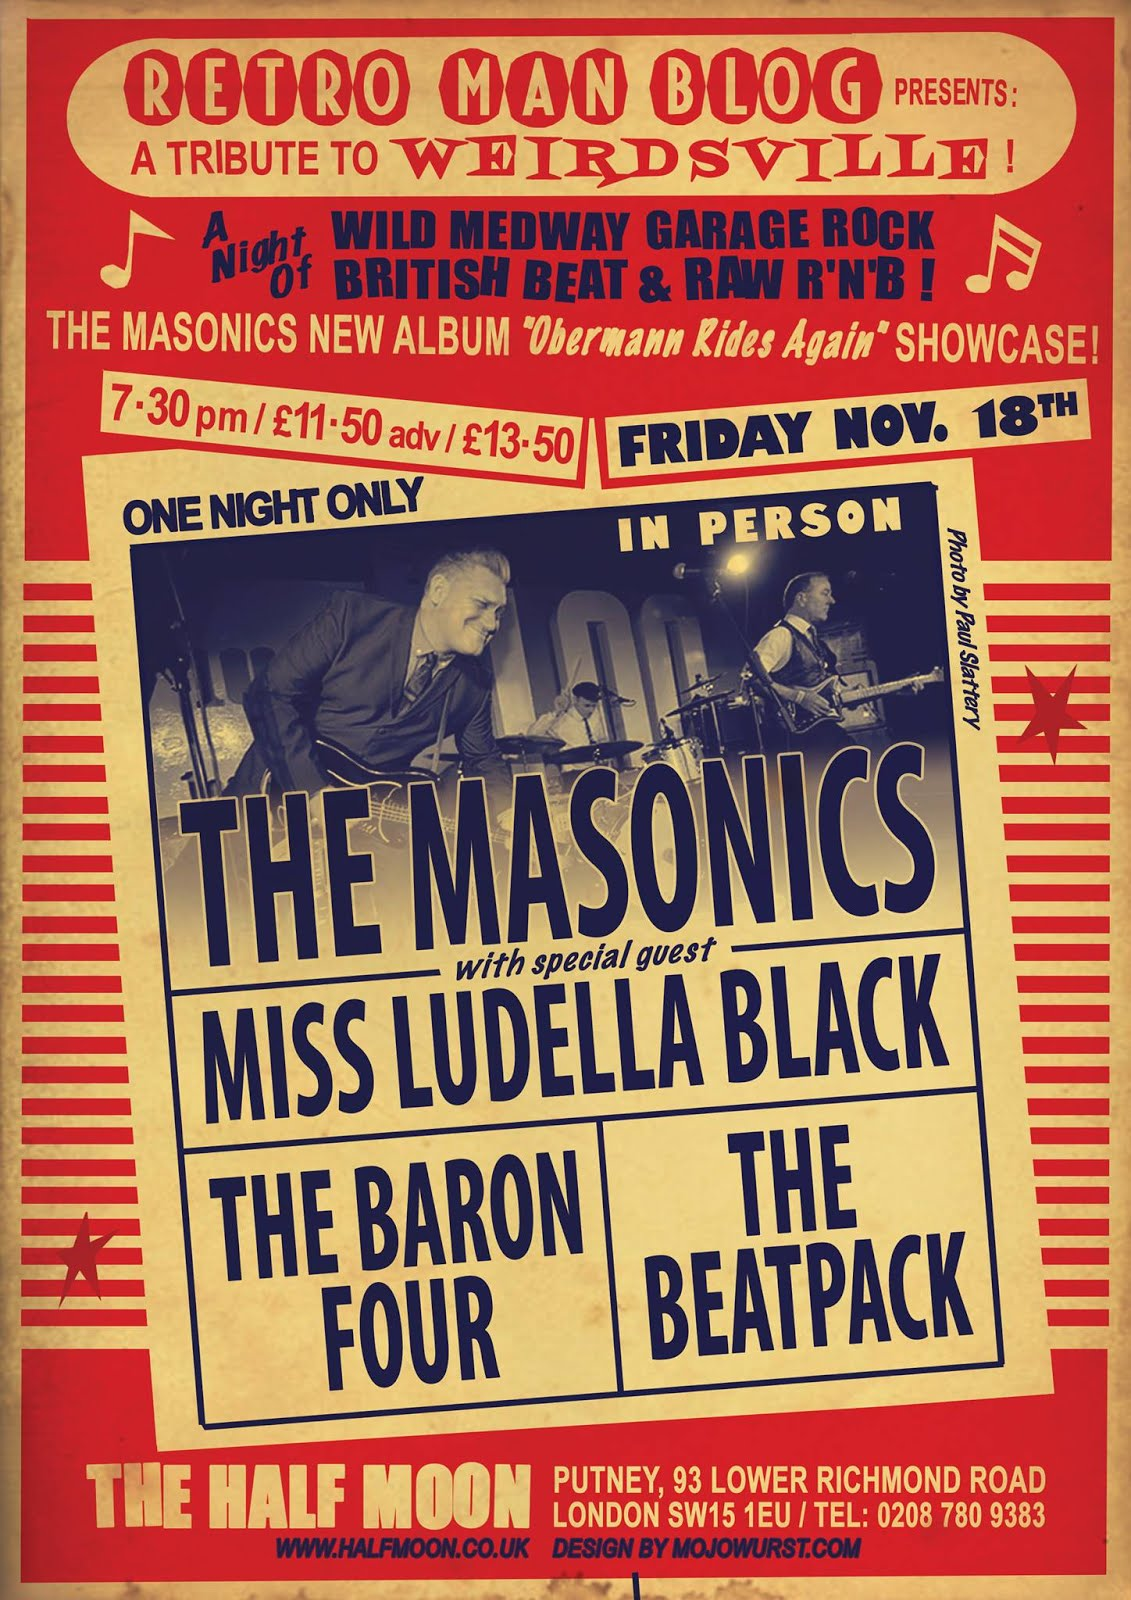 The Masonics + The Baron Four + The Beatpack at The Half Moon Putney on Friday November 18th